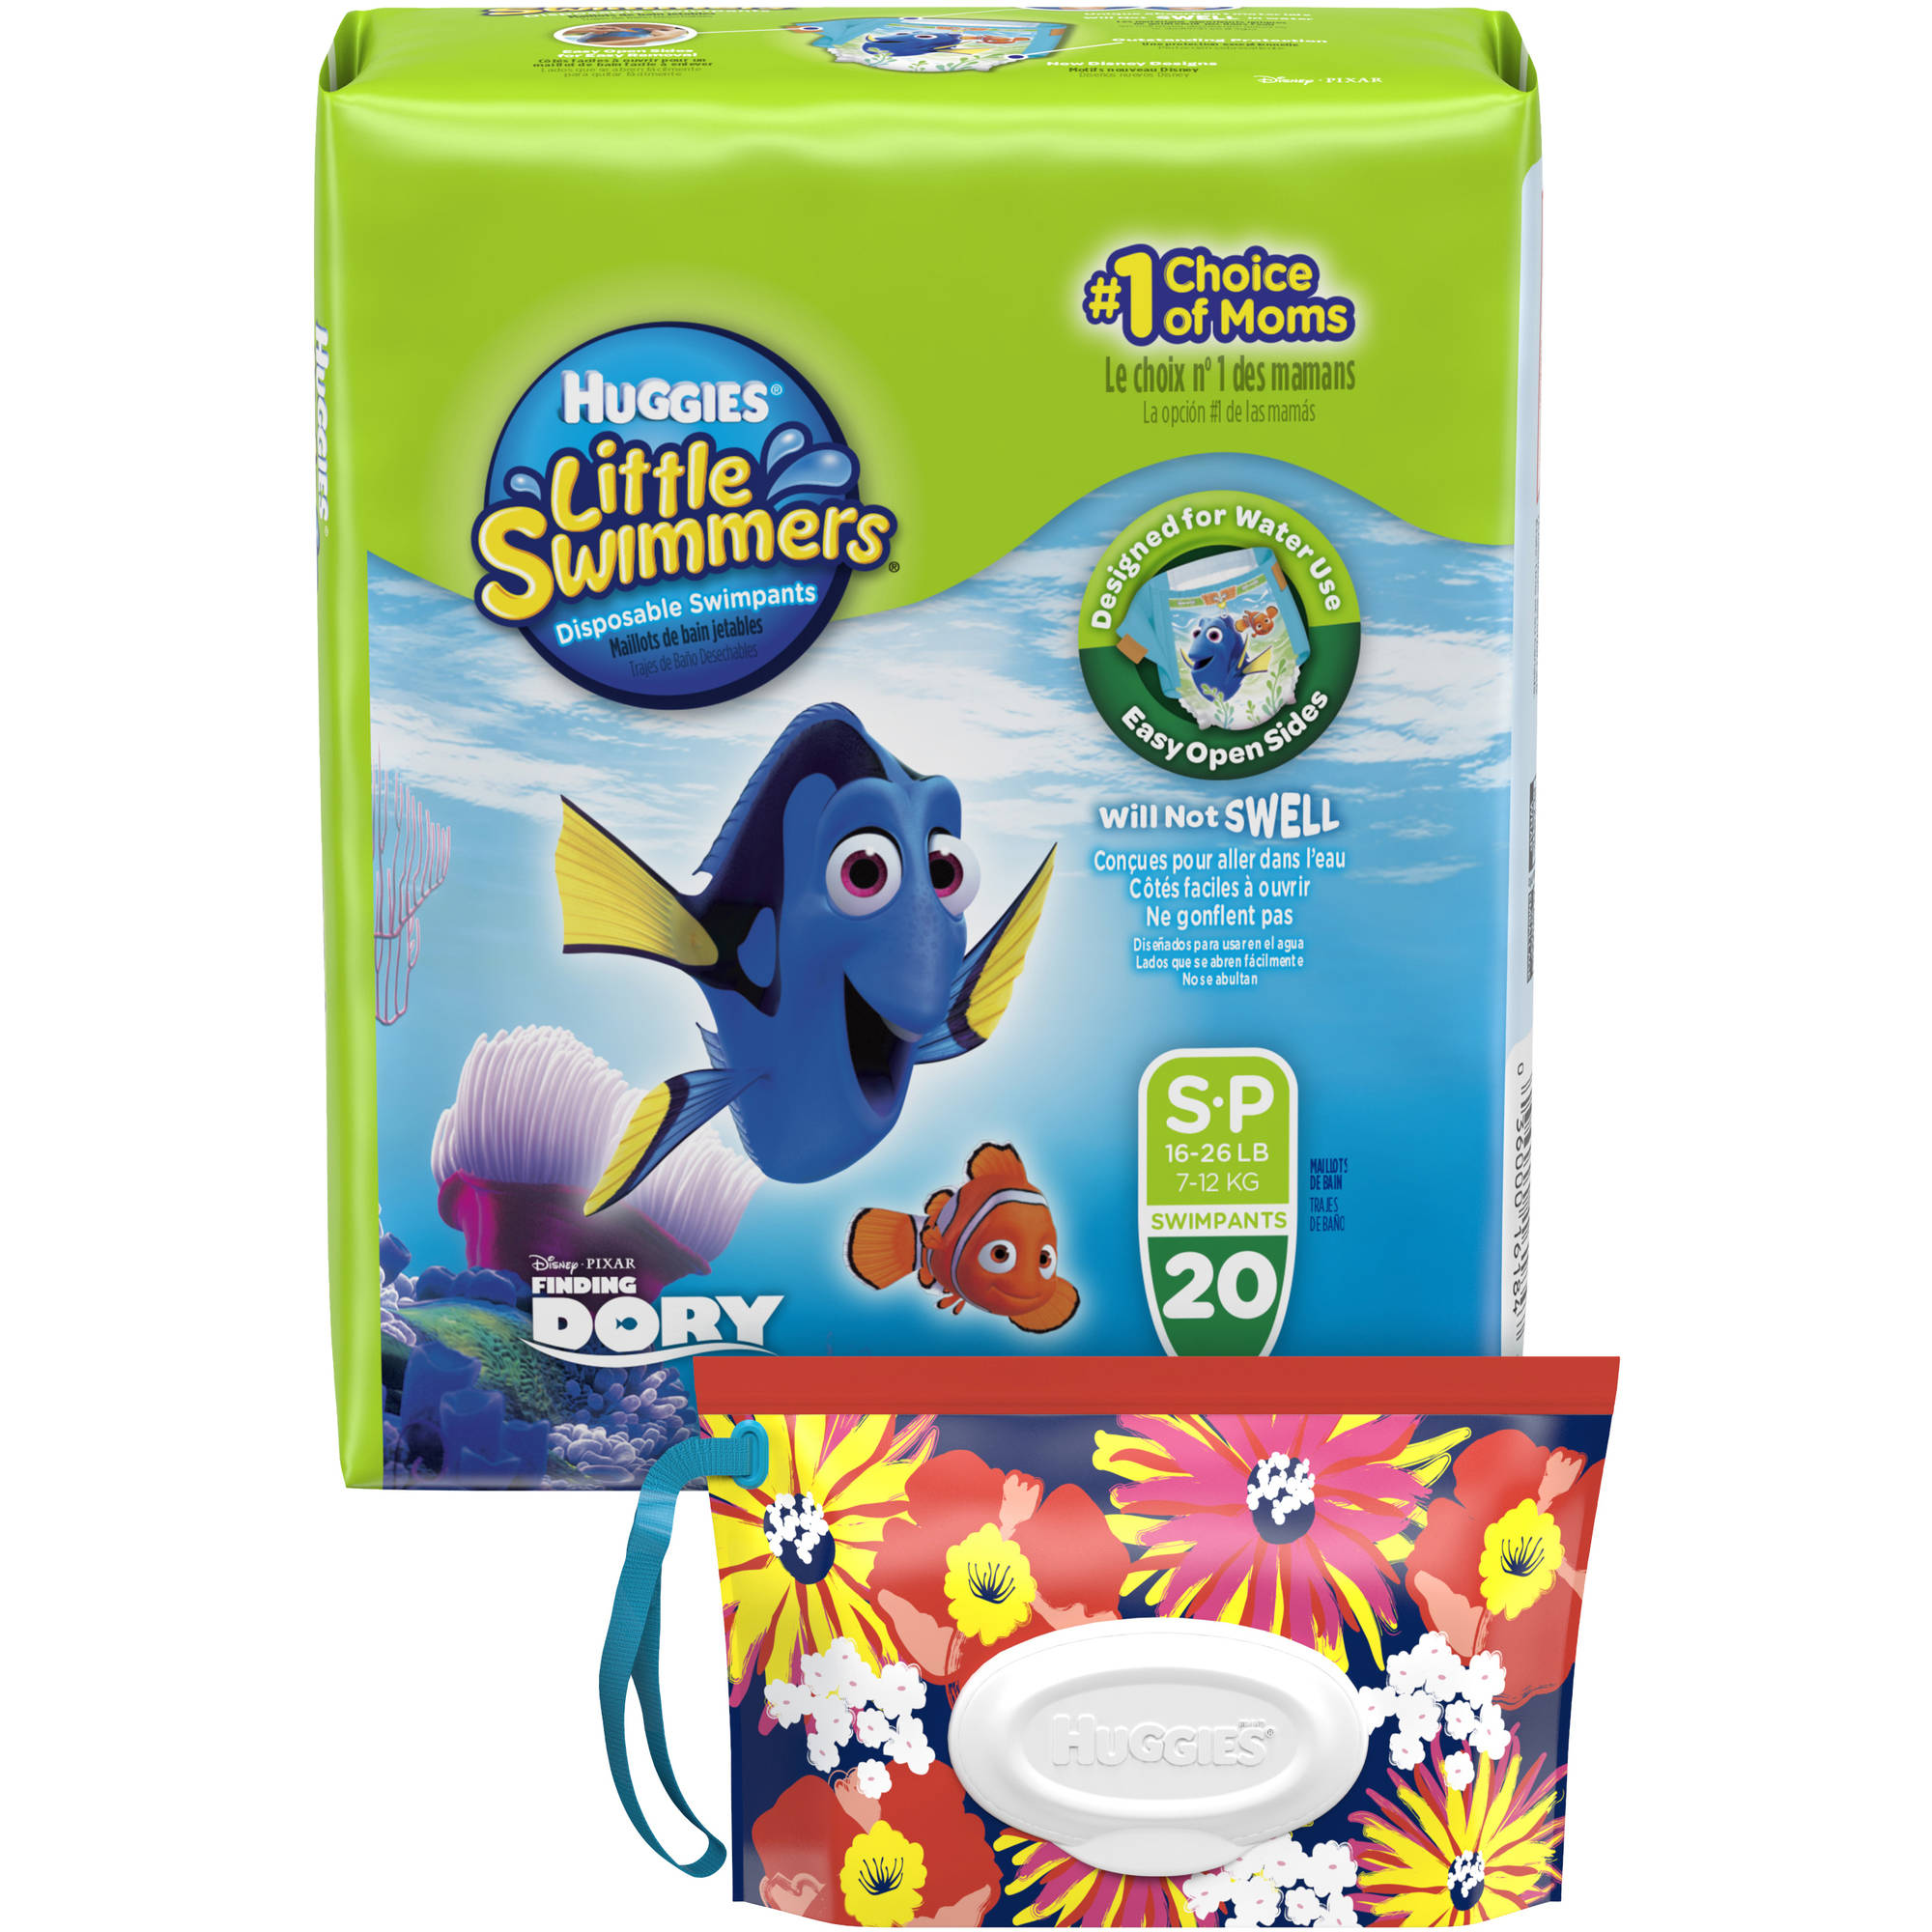 HUGGIES Little Swimmers Disposable Swimpants, (Choose Your Size)